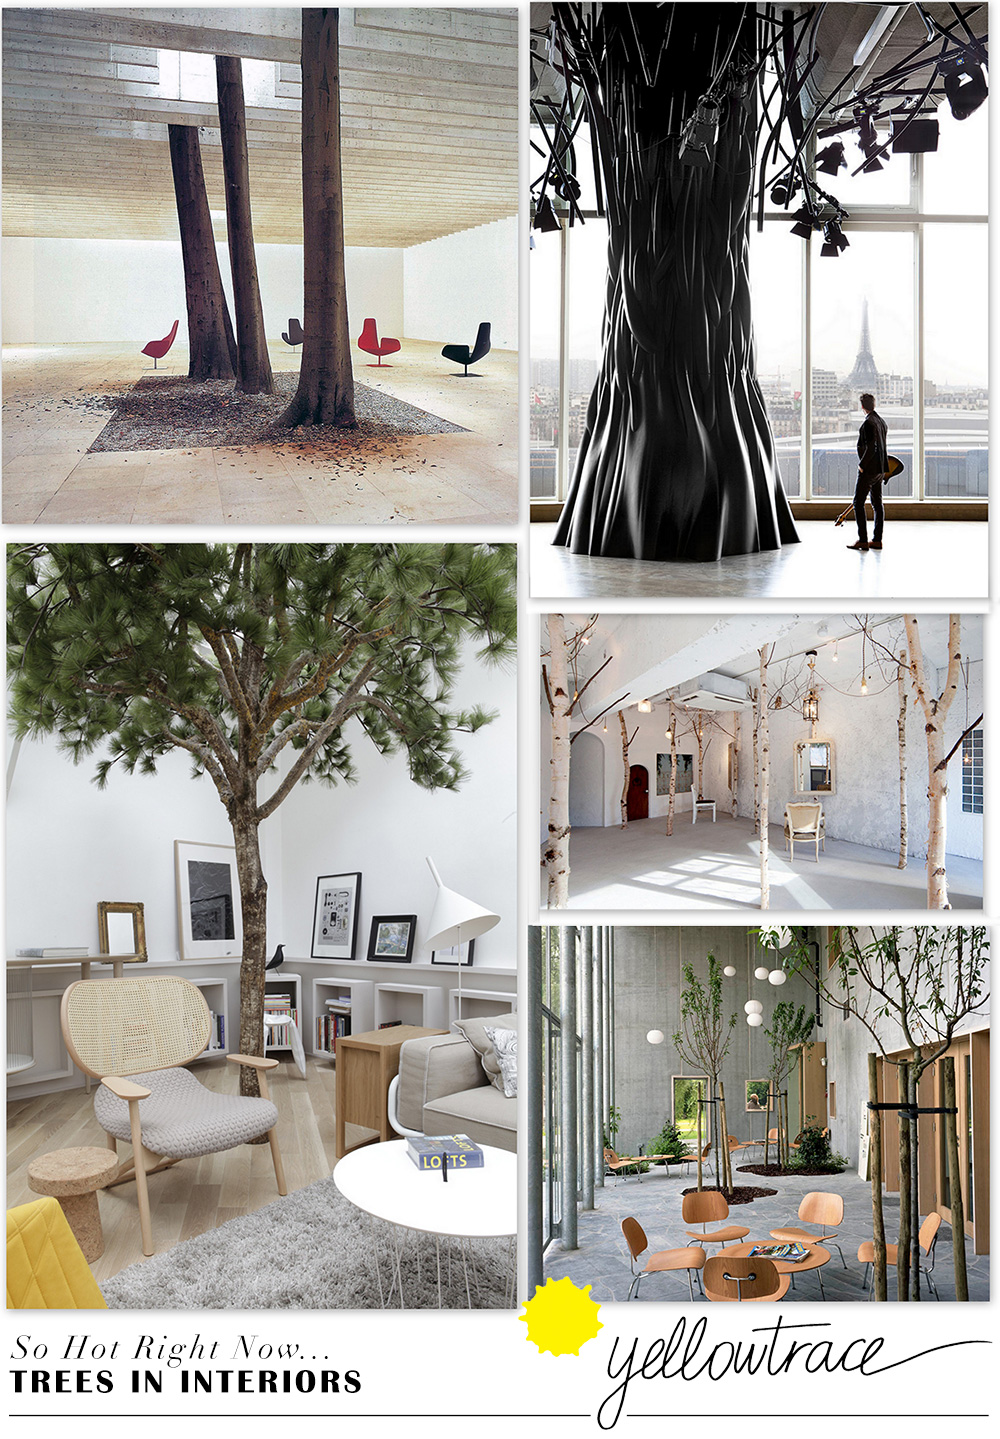 So Hot Right Now // Trees In Interiors.